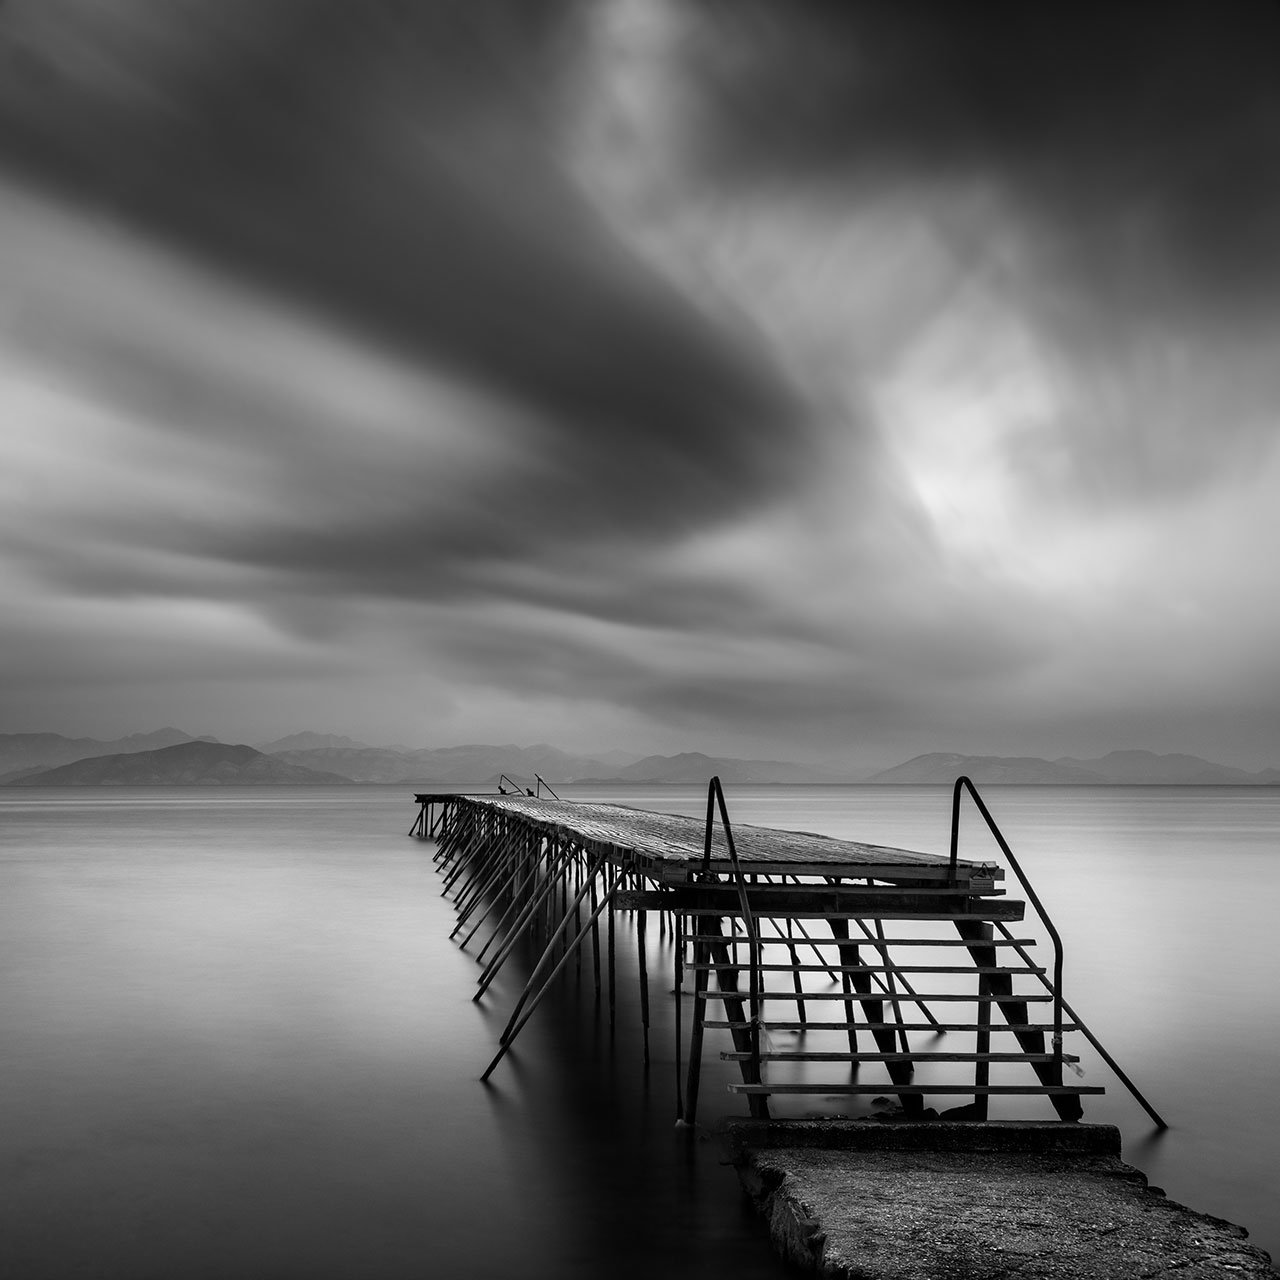 George Digalakis, Fade to black. © George Digalakis.